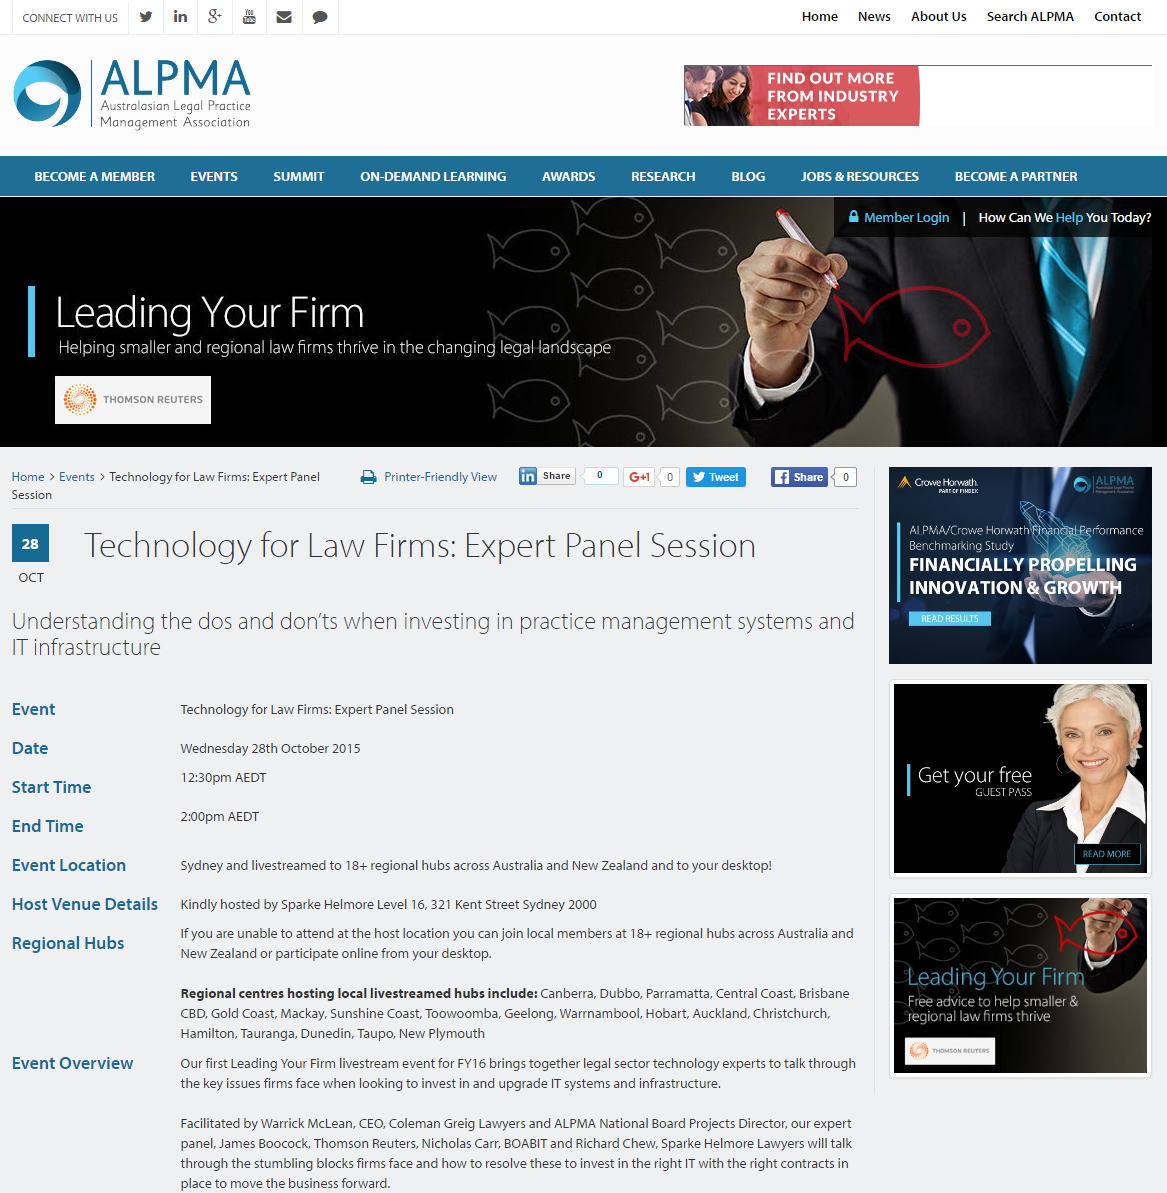 ALPMA - Technology for Law Firms: Expert Panel Session